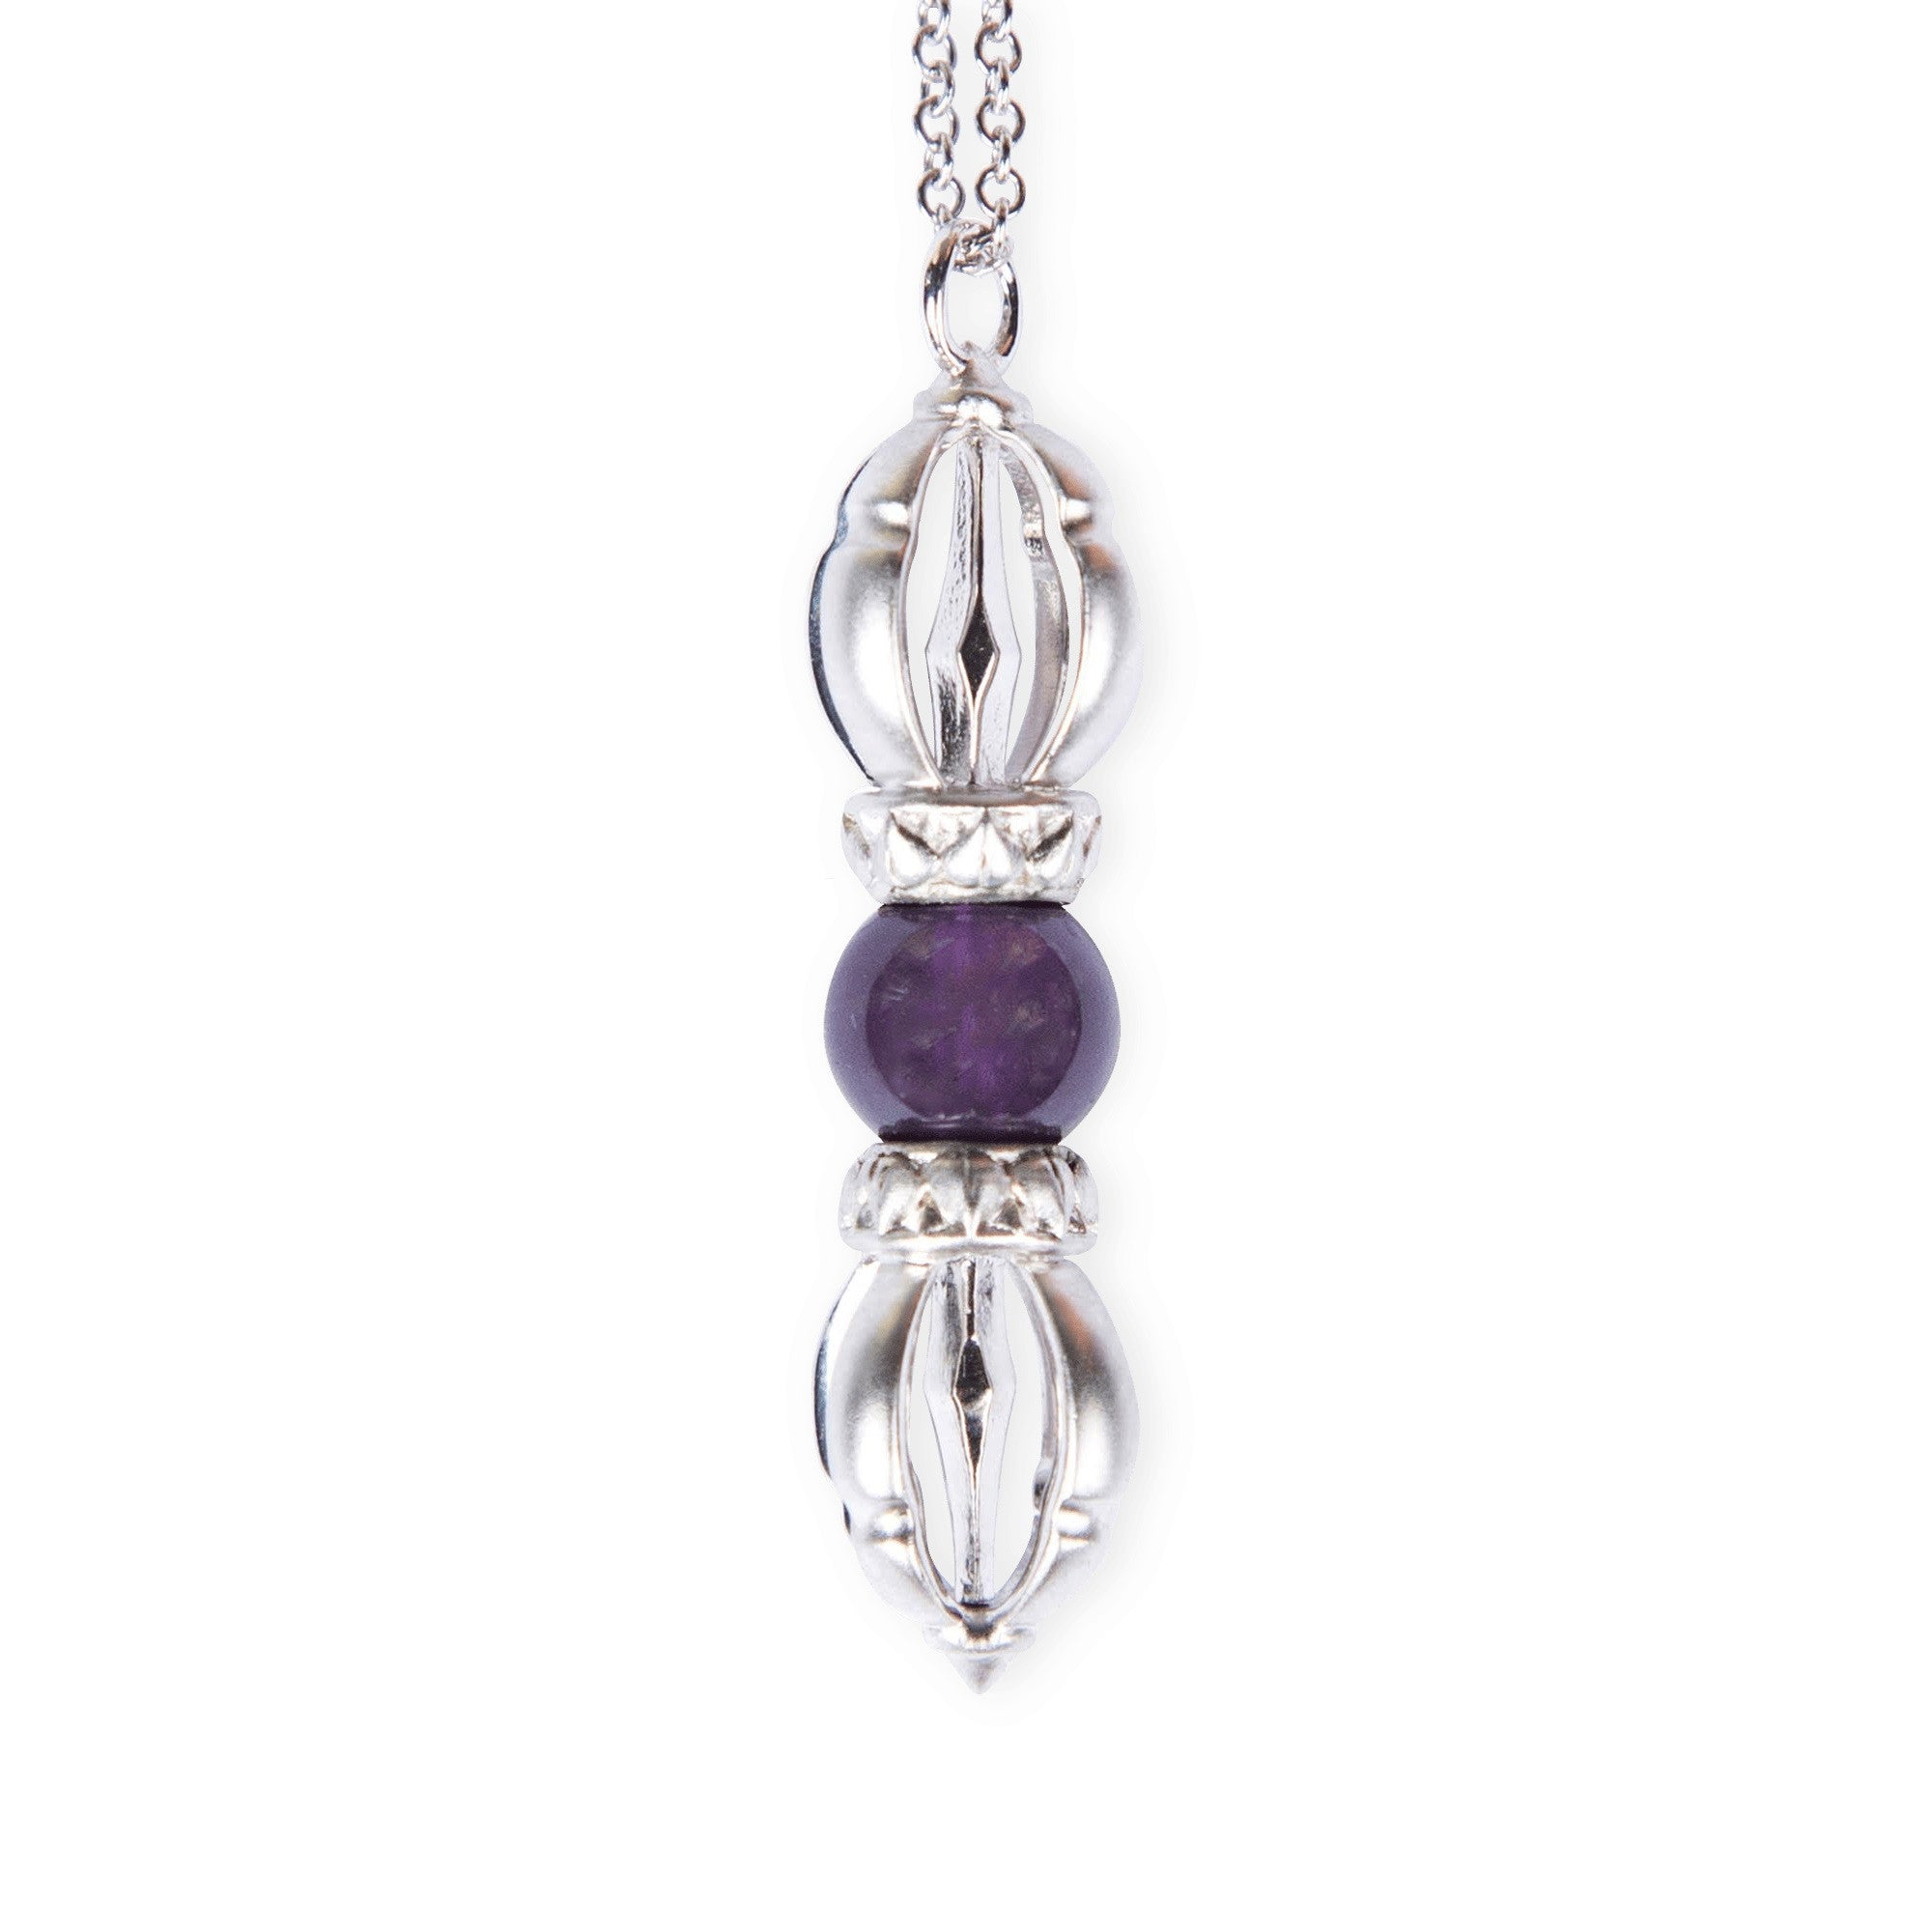 The Silatha Amethyst Dorje in white gold for more peace, balance, patience and spirituality. Paired with a meditation course.